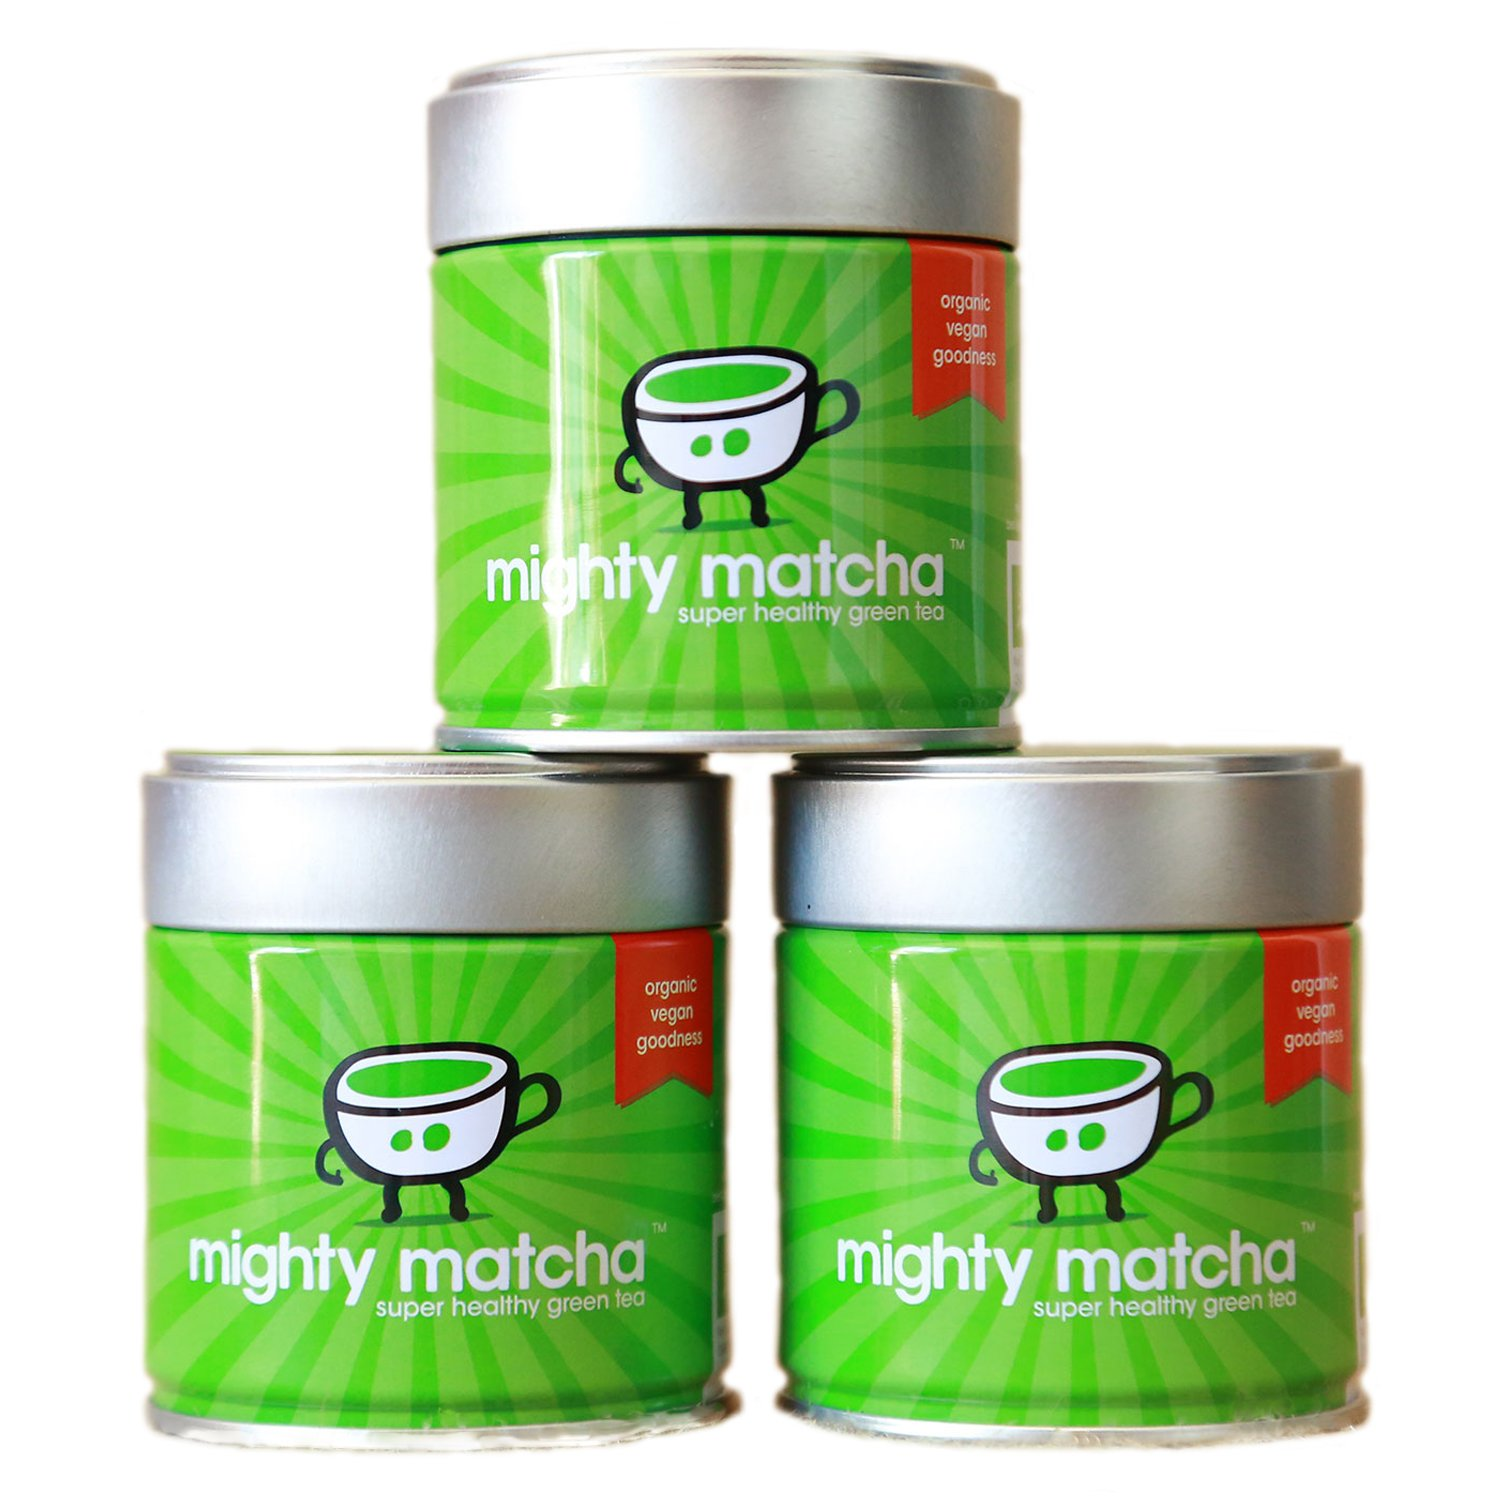 Mighty Matcha | Organic Ceremonial Grade Matcha Green Tea Powder | Great Taste Winner 2012 | Single Source First Harvest | Certified GB-ORG-05 EU Organic | Energy Boost, Detox, Weight Loss |